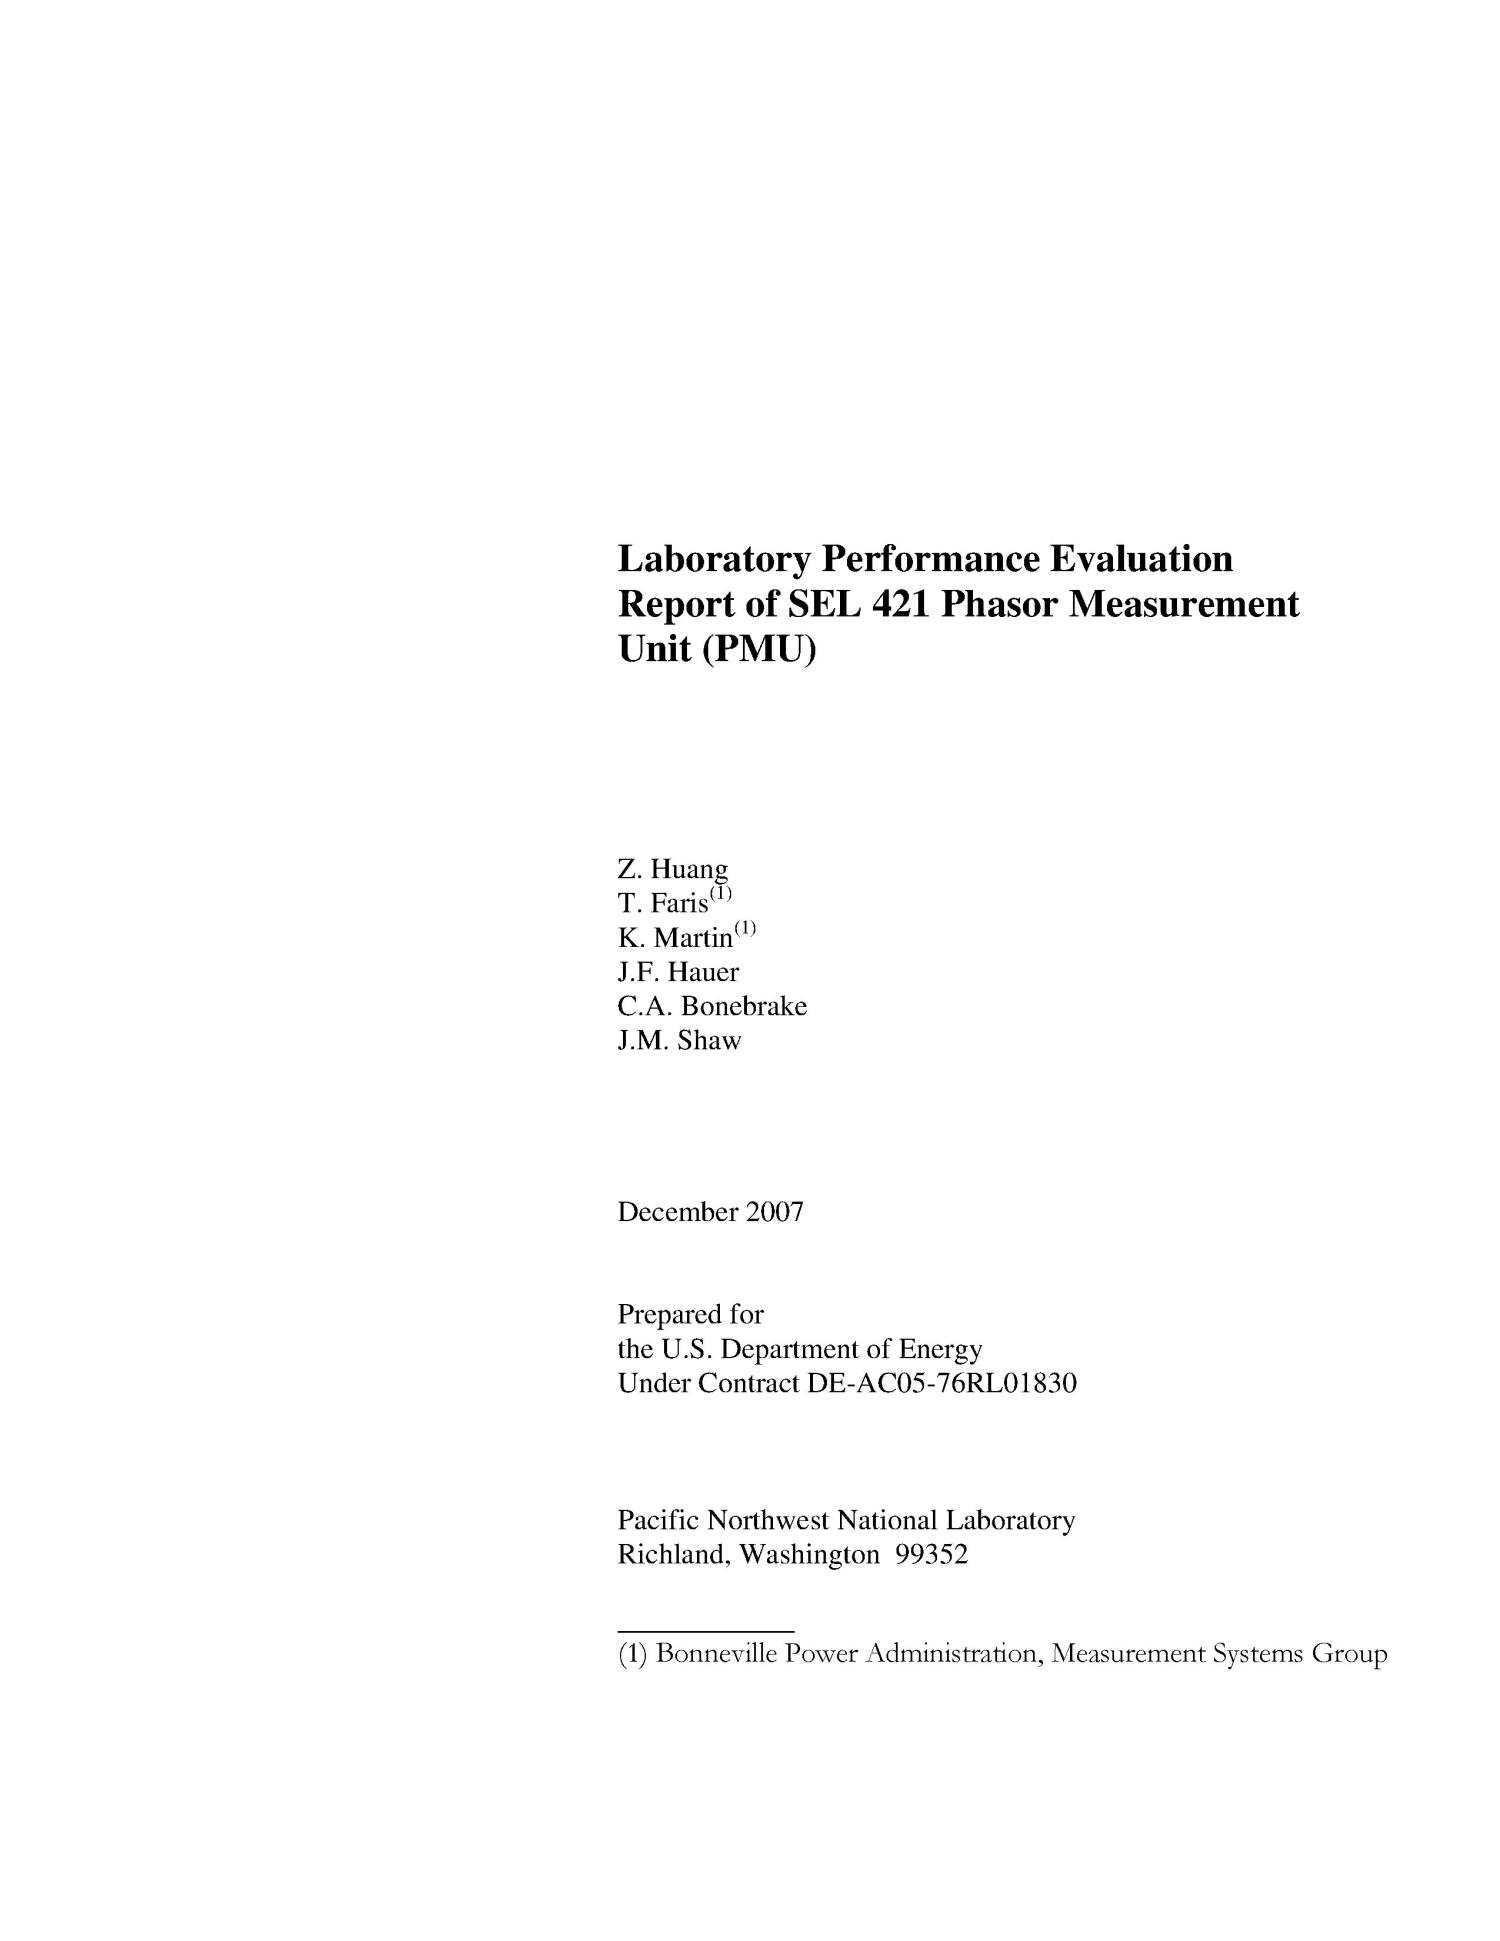 Laboratory Performance Evaluation Report of SEL 421 Phasor Measurement Unit                                                                                                      [Sequence #]: 3 of 59